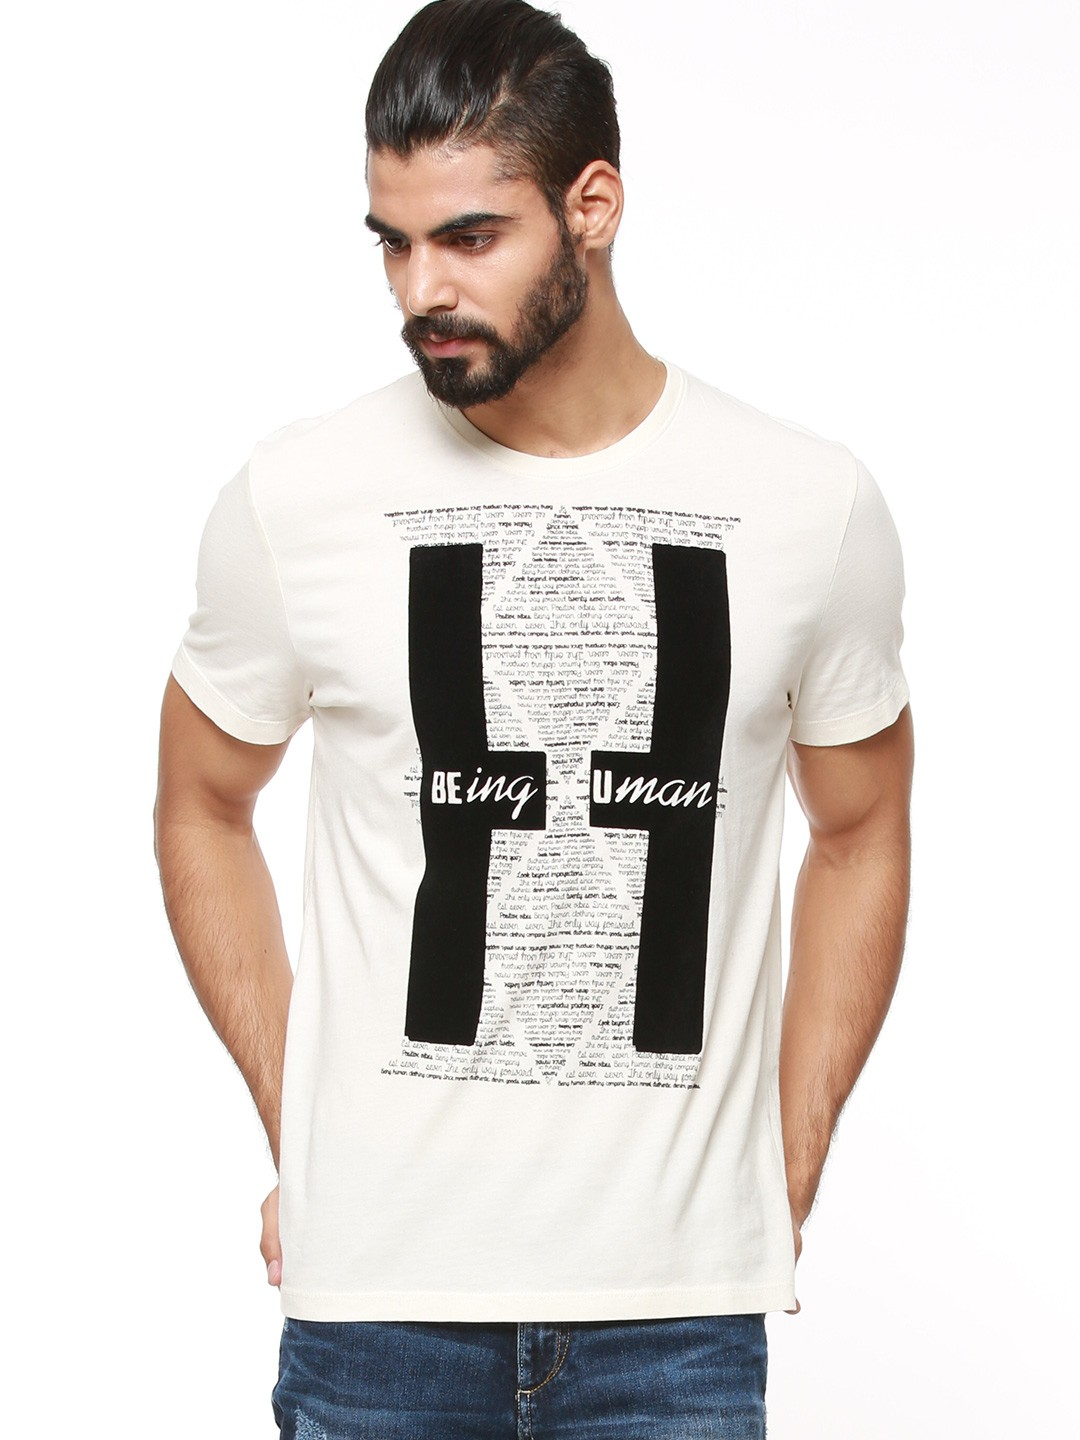 Buy being human graphic printed t shirt for men men 39 s for Being human t shirts buy online india